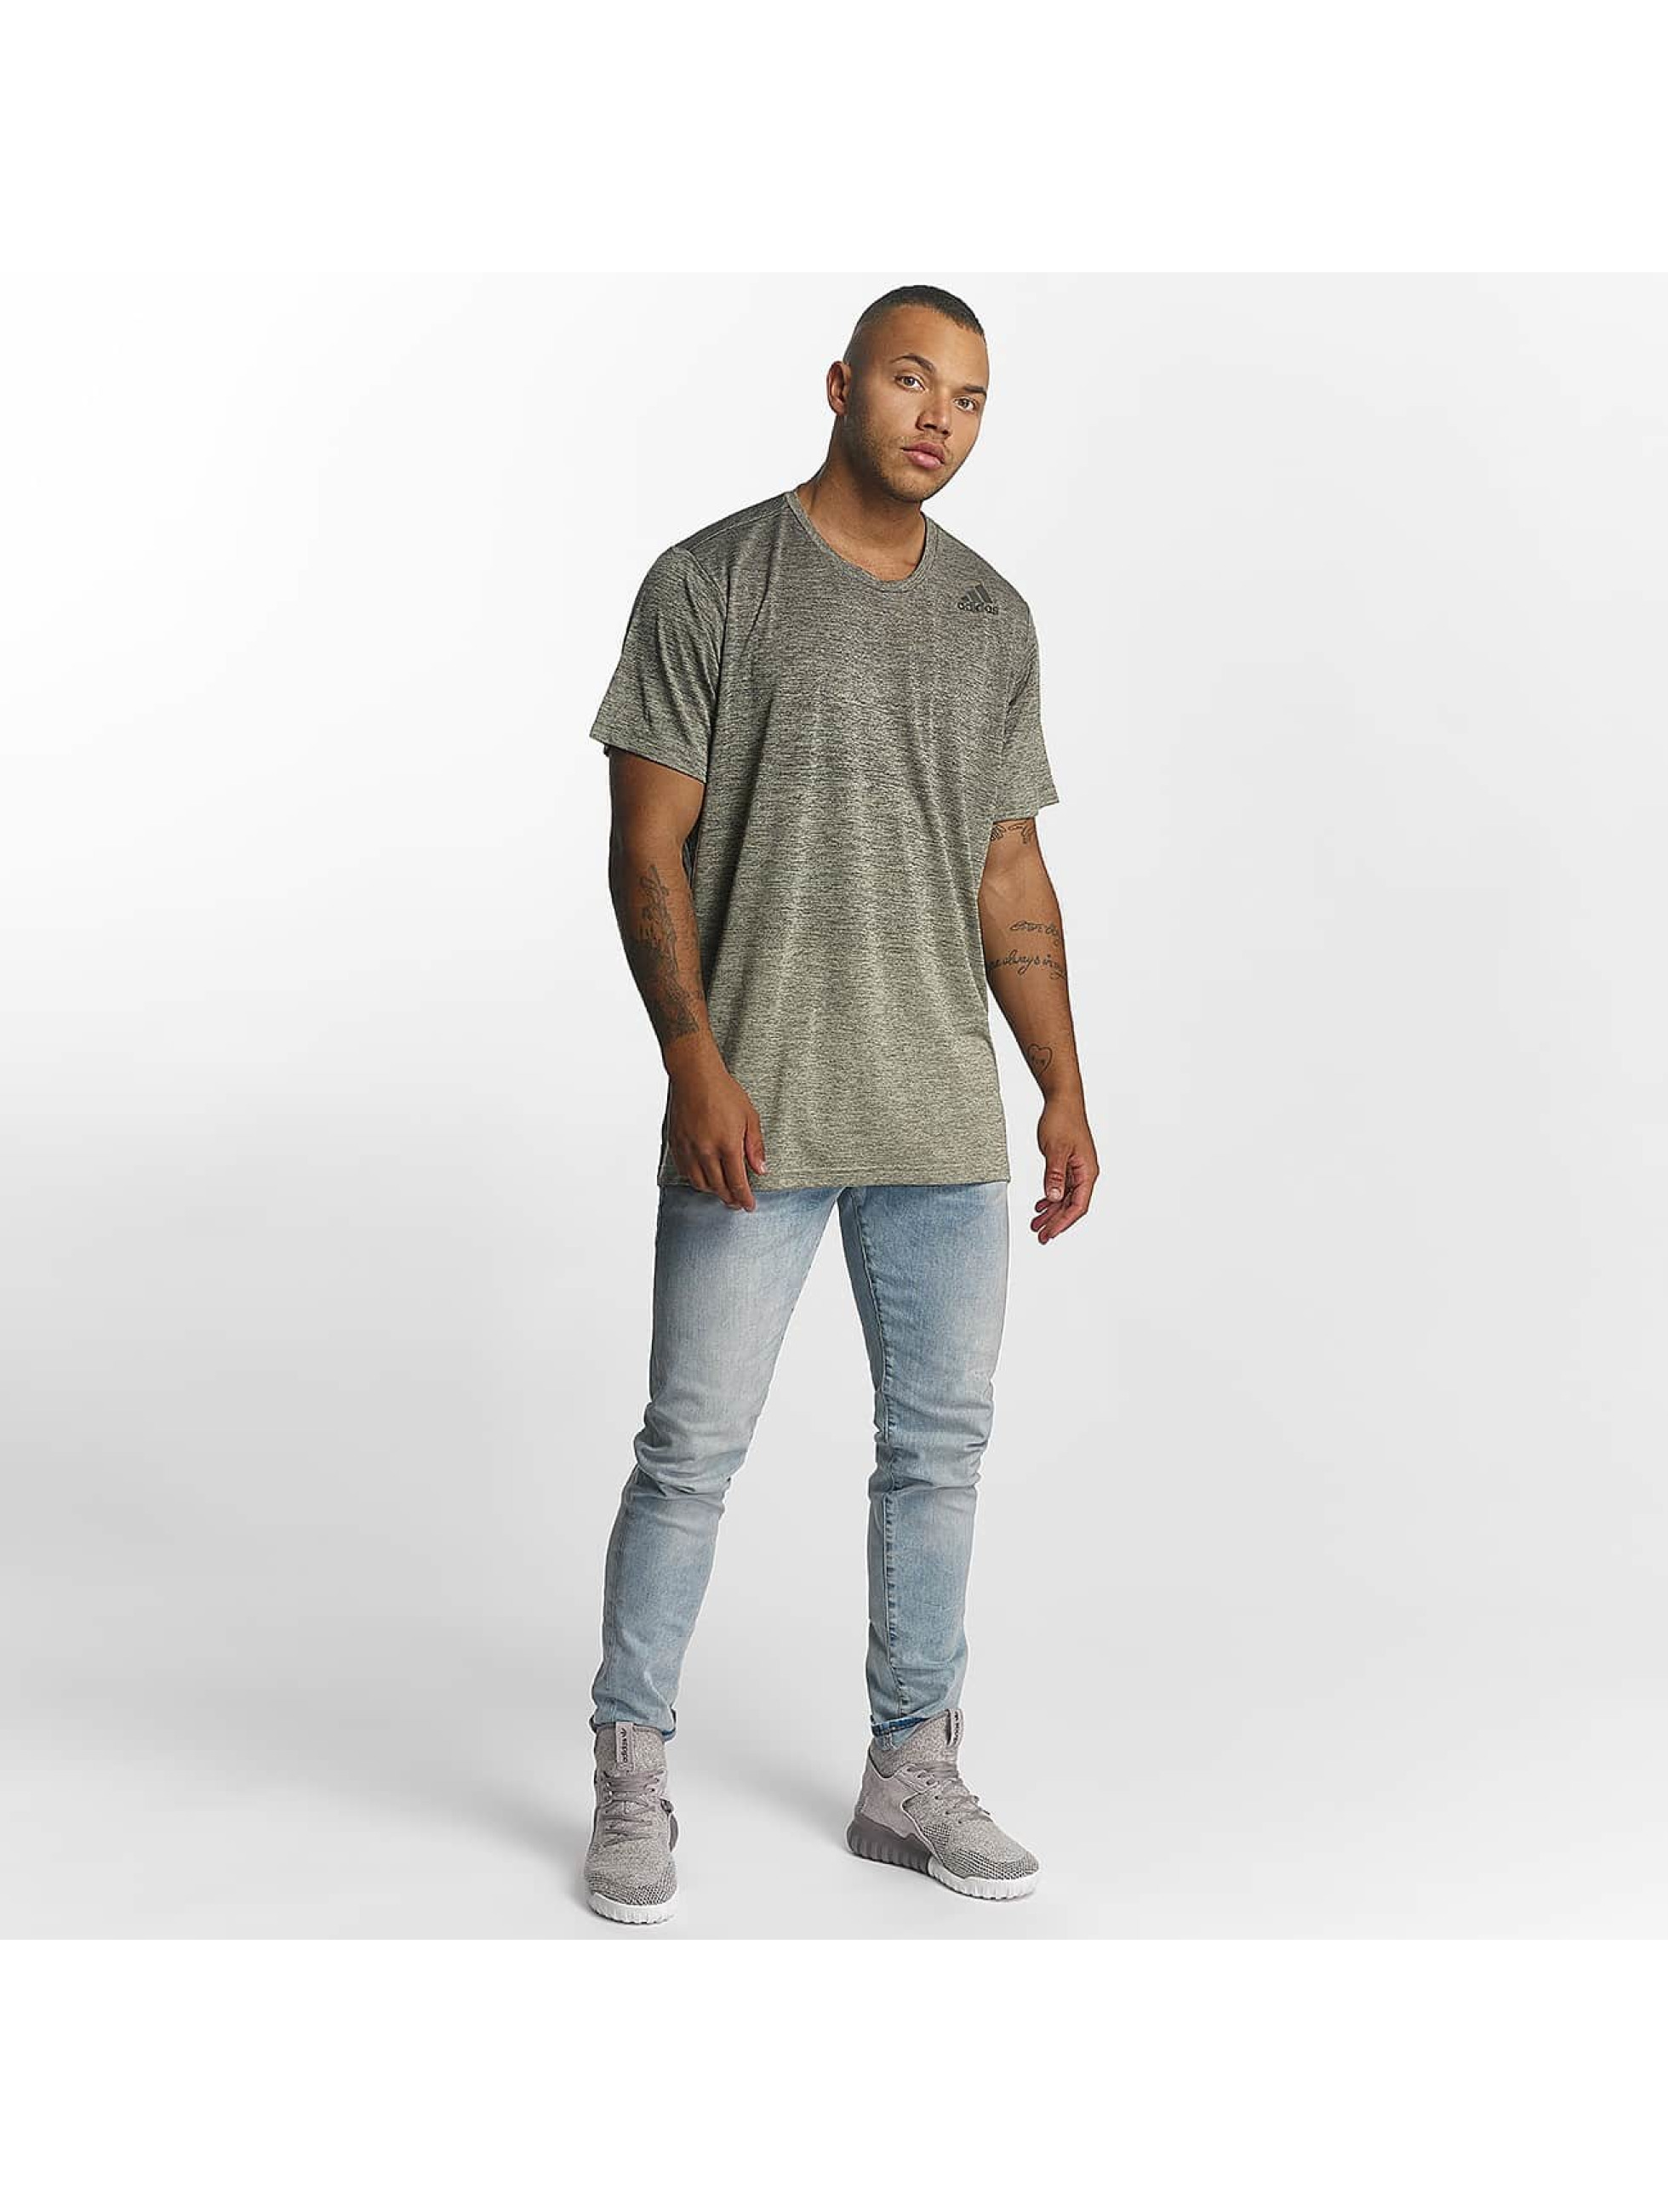 adidas Performance t-shirt Freelift Gradient grijs